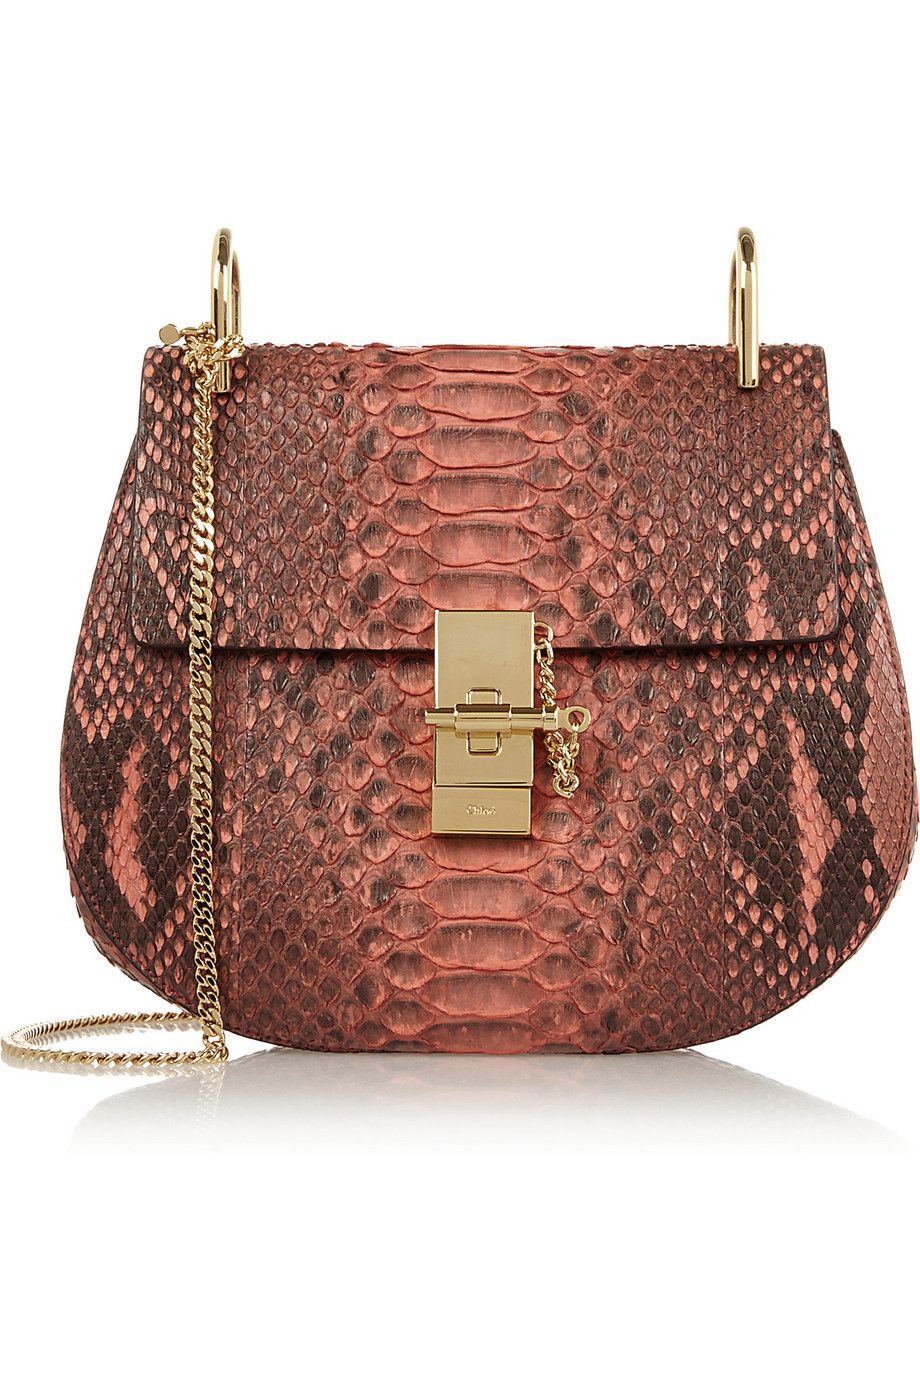 The Holiday gift you need to receive before Christmas: Chloé Drew ...